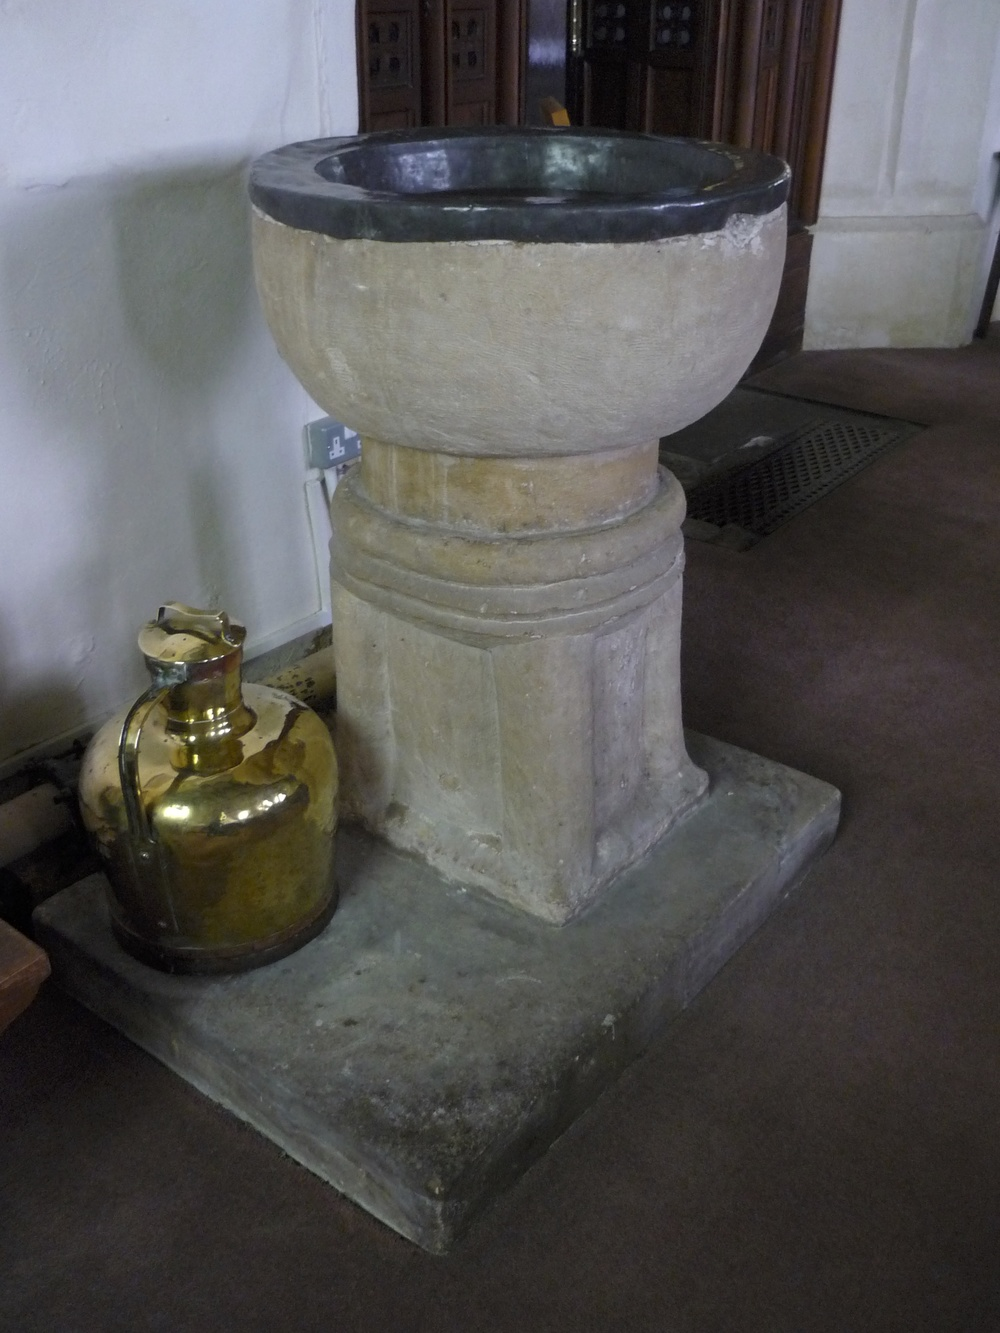 Font in Saint Mary the Virgin Parish Church, Stanton Drew